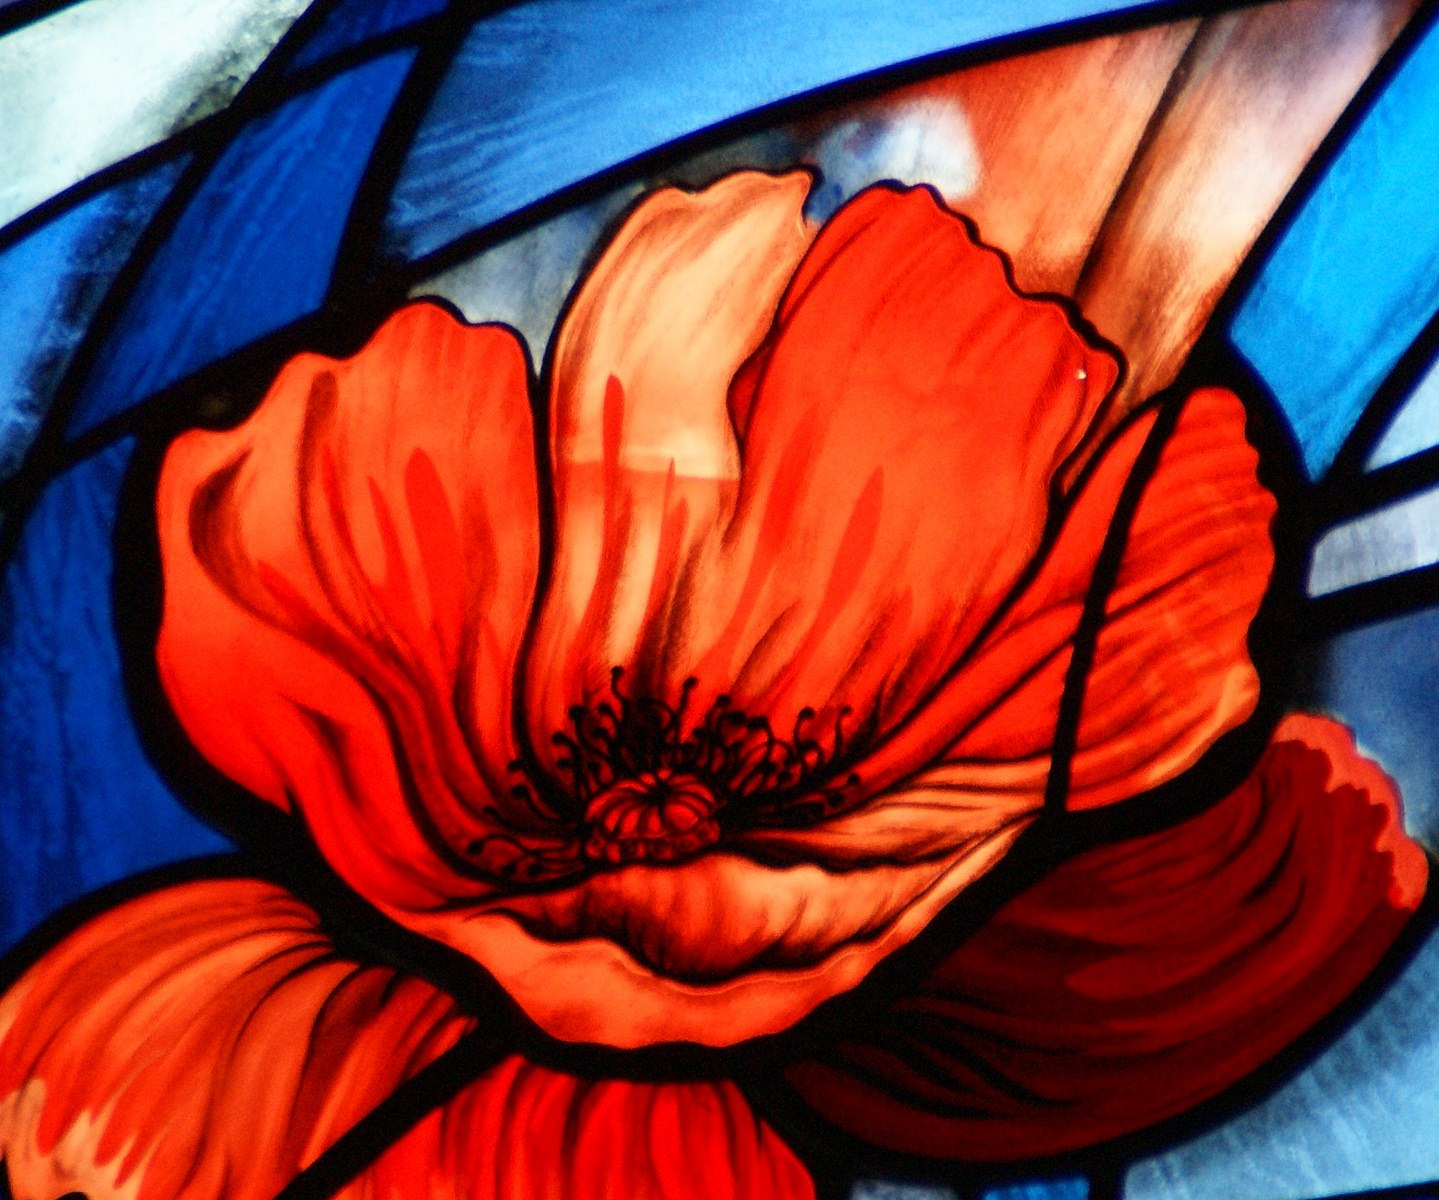 World War One Remembrance stained glass window by stainedglassartist on Flickr https://flic.kr/p/pNXDxb